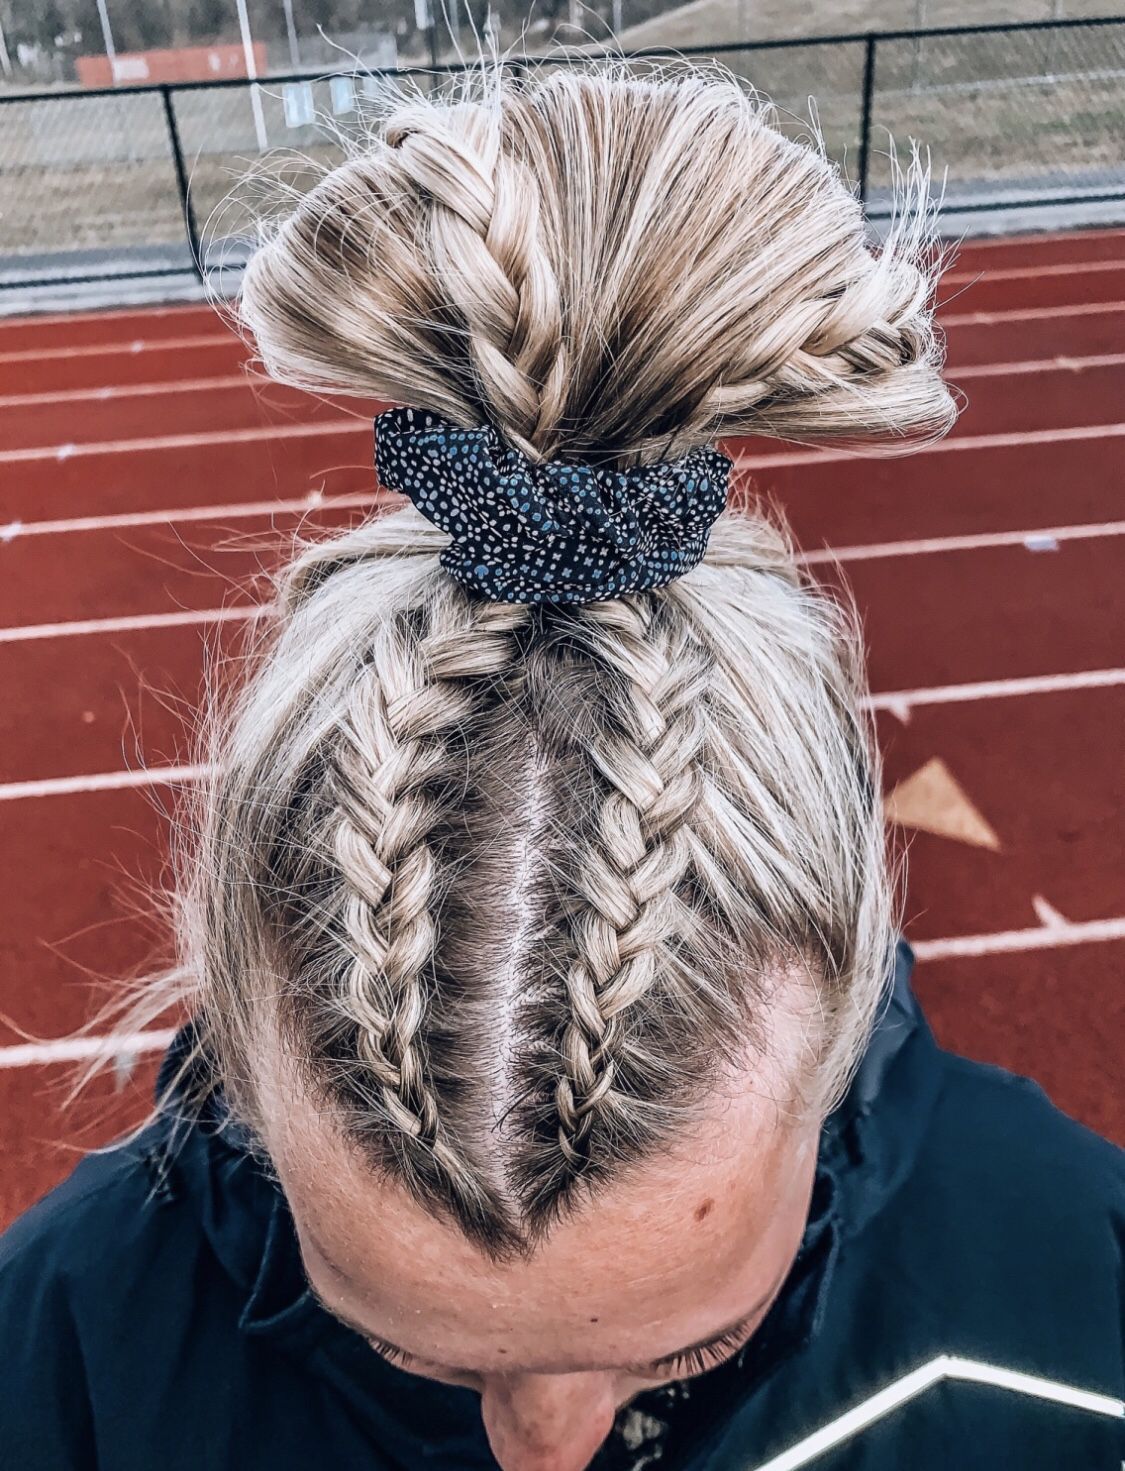 Perfect Braid For A Volleyball Game Sports Hairstyles Sporty Hairstyles Volleyball Hairstyles